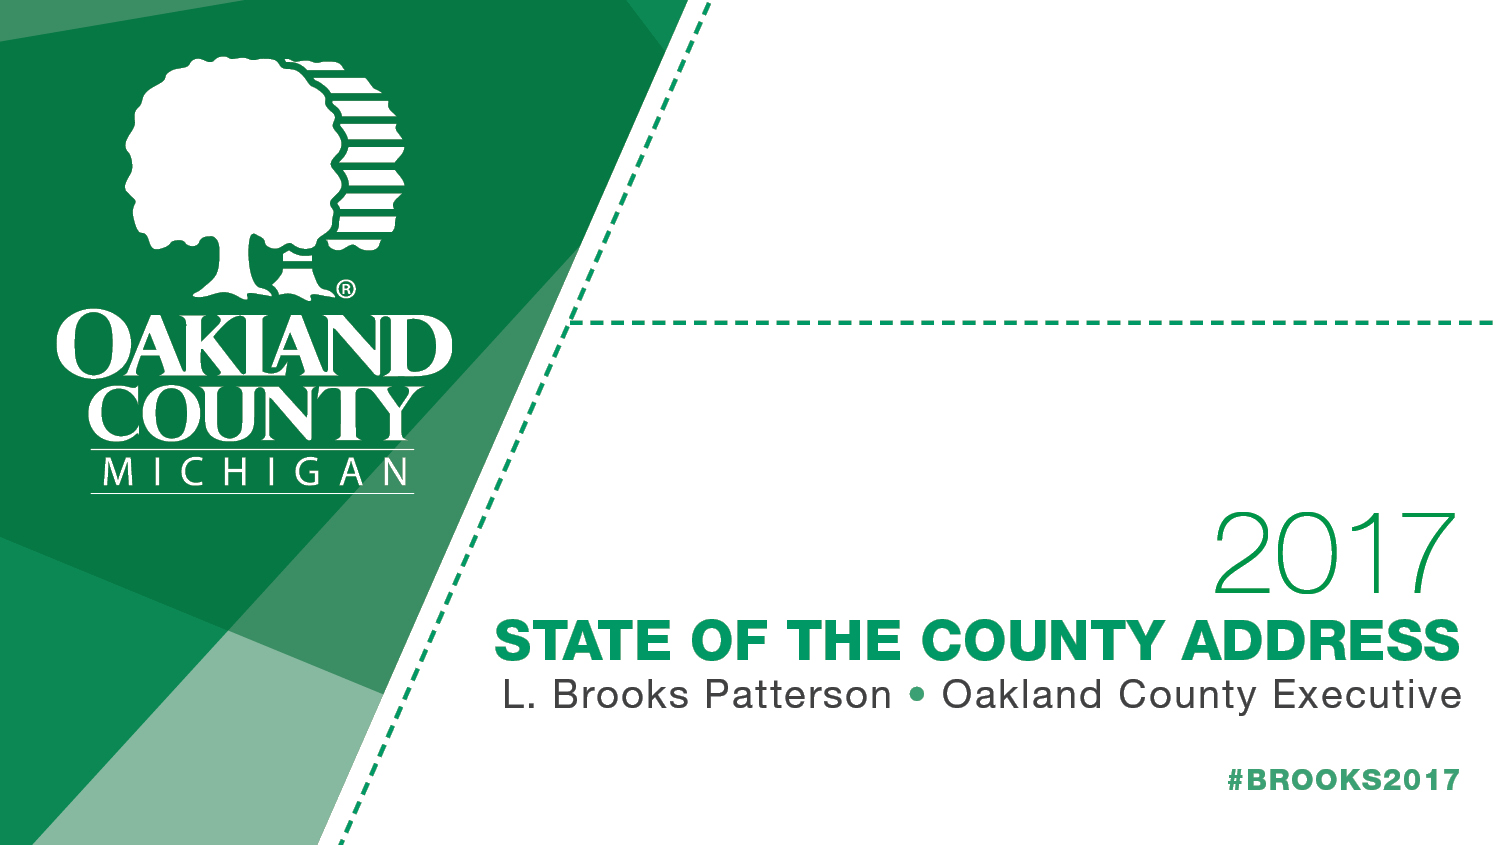 oakland-couty-sotc-2017